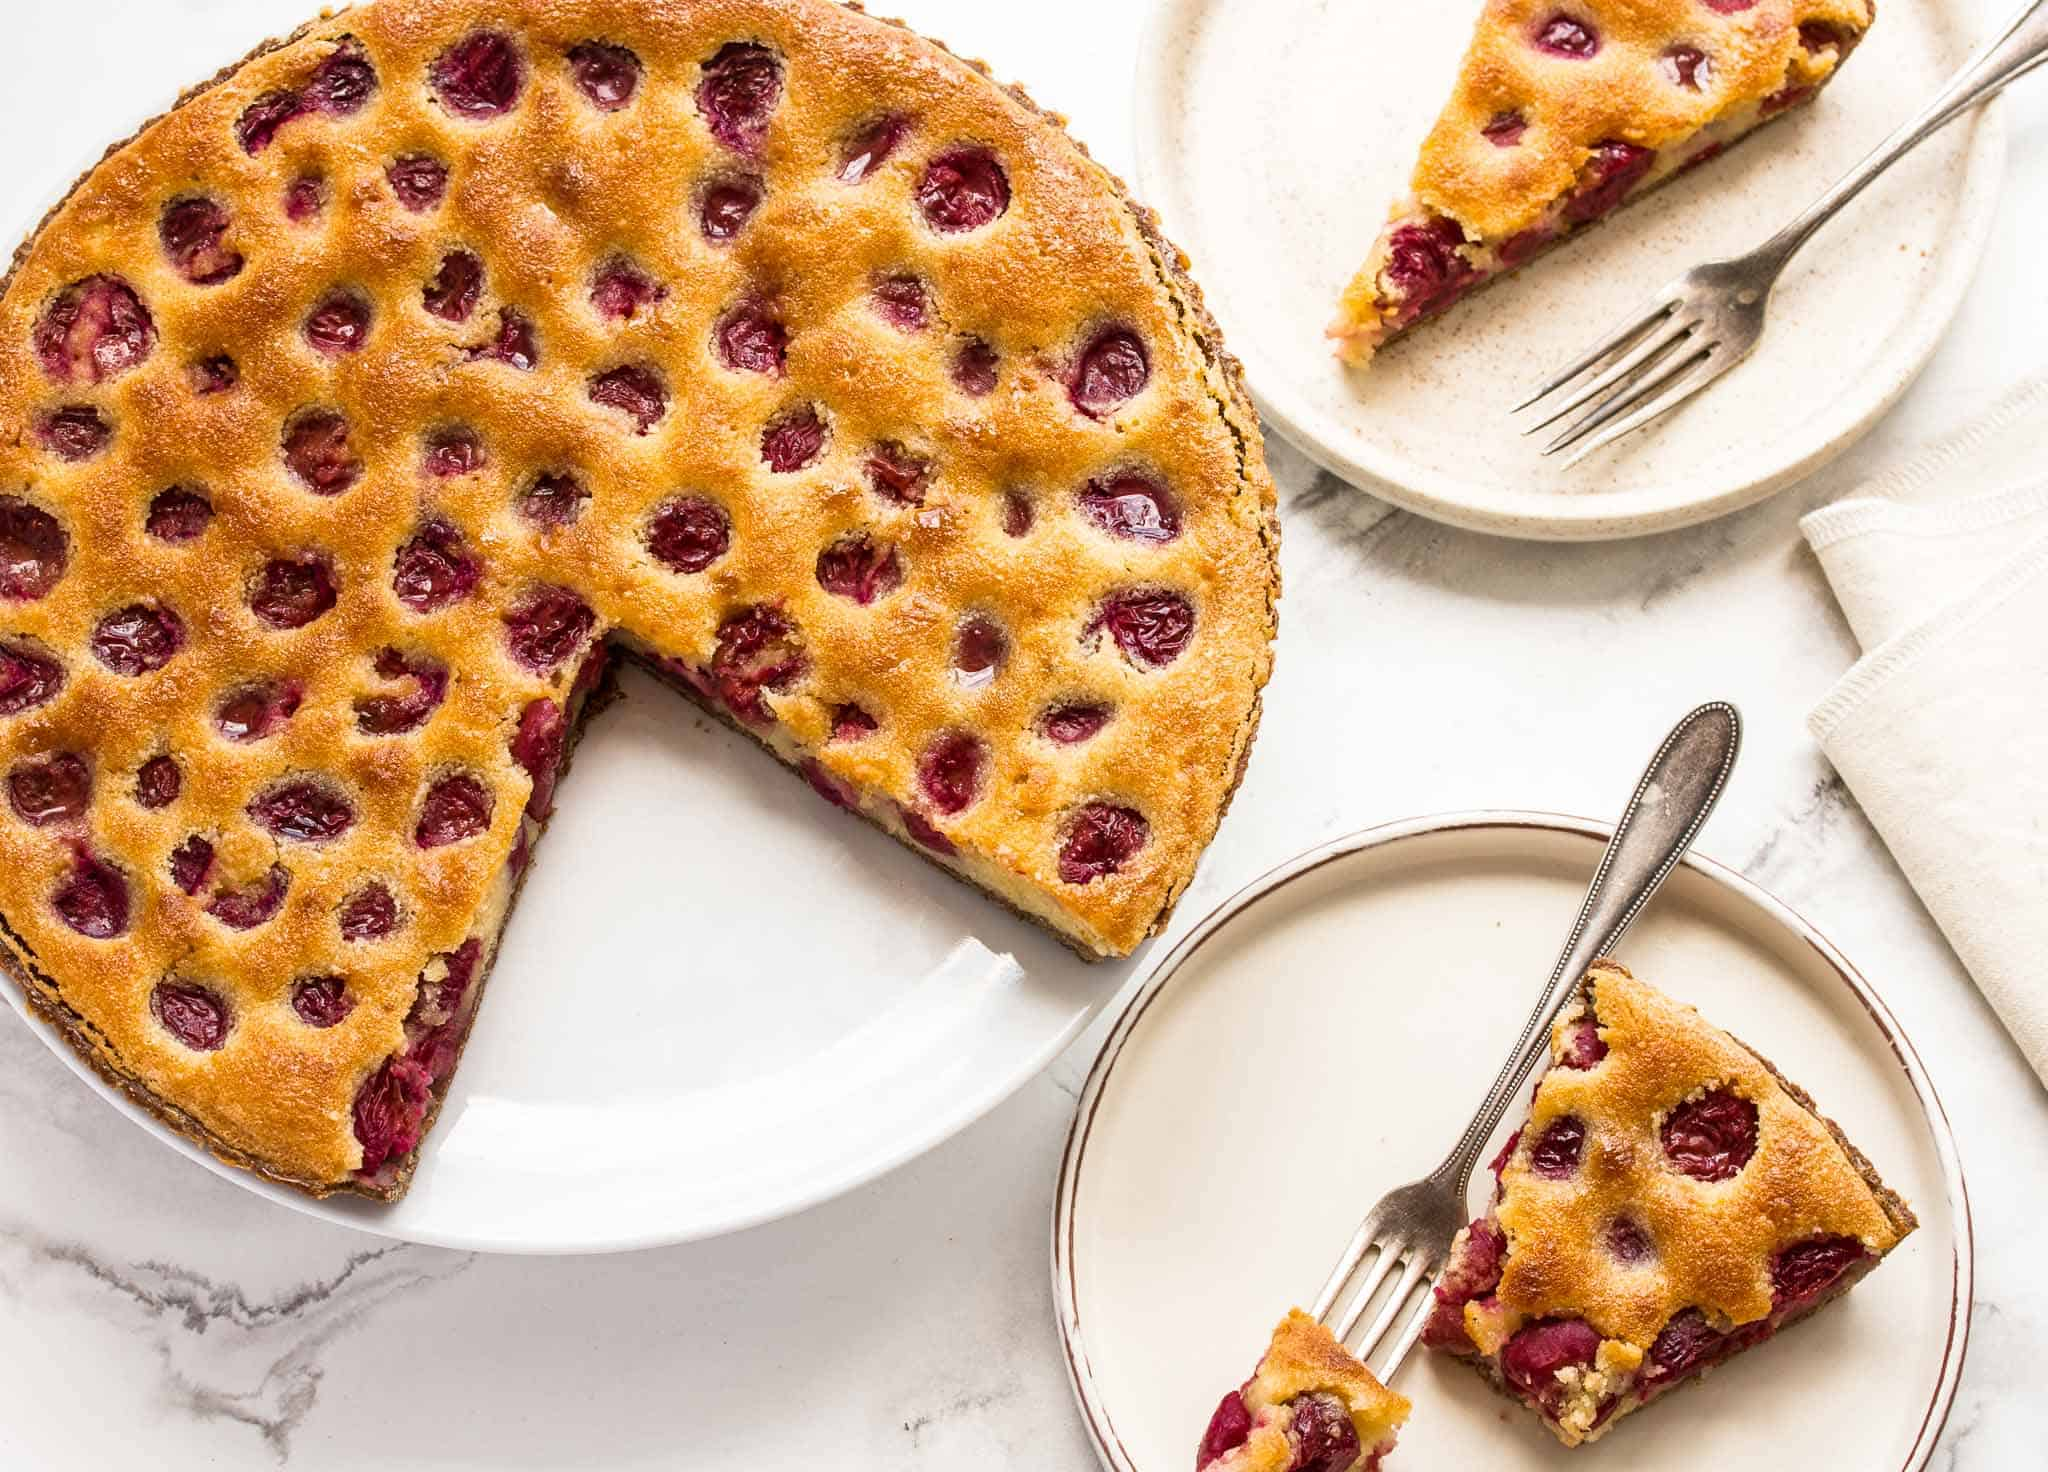 How to bake a cherry pie beter than your granny ever could. Almondy, sweet, crispy yet delicate crust, sweet tart cherry bonanza time